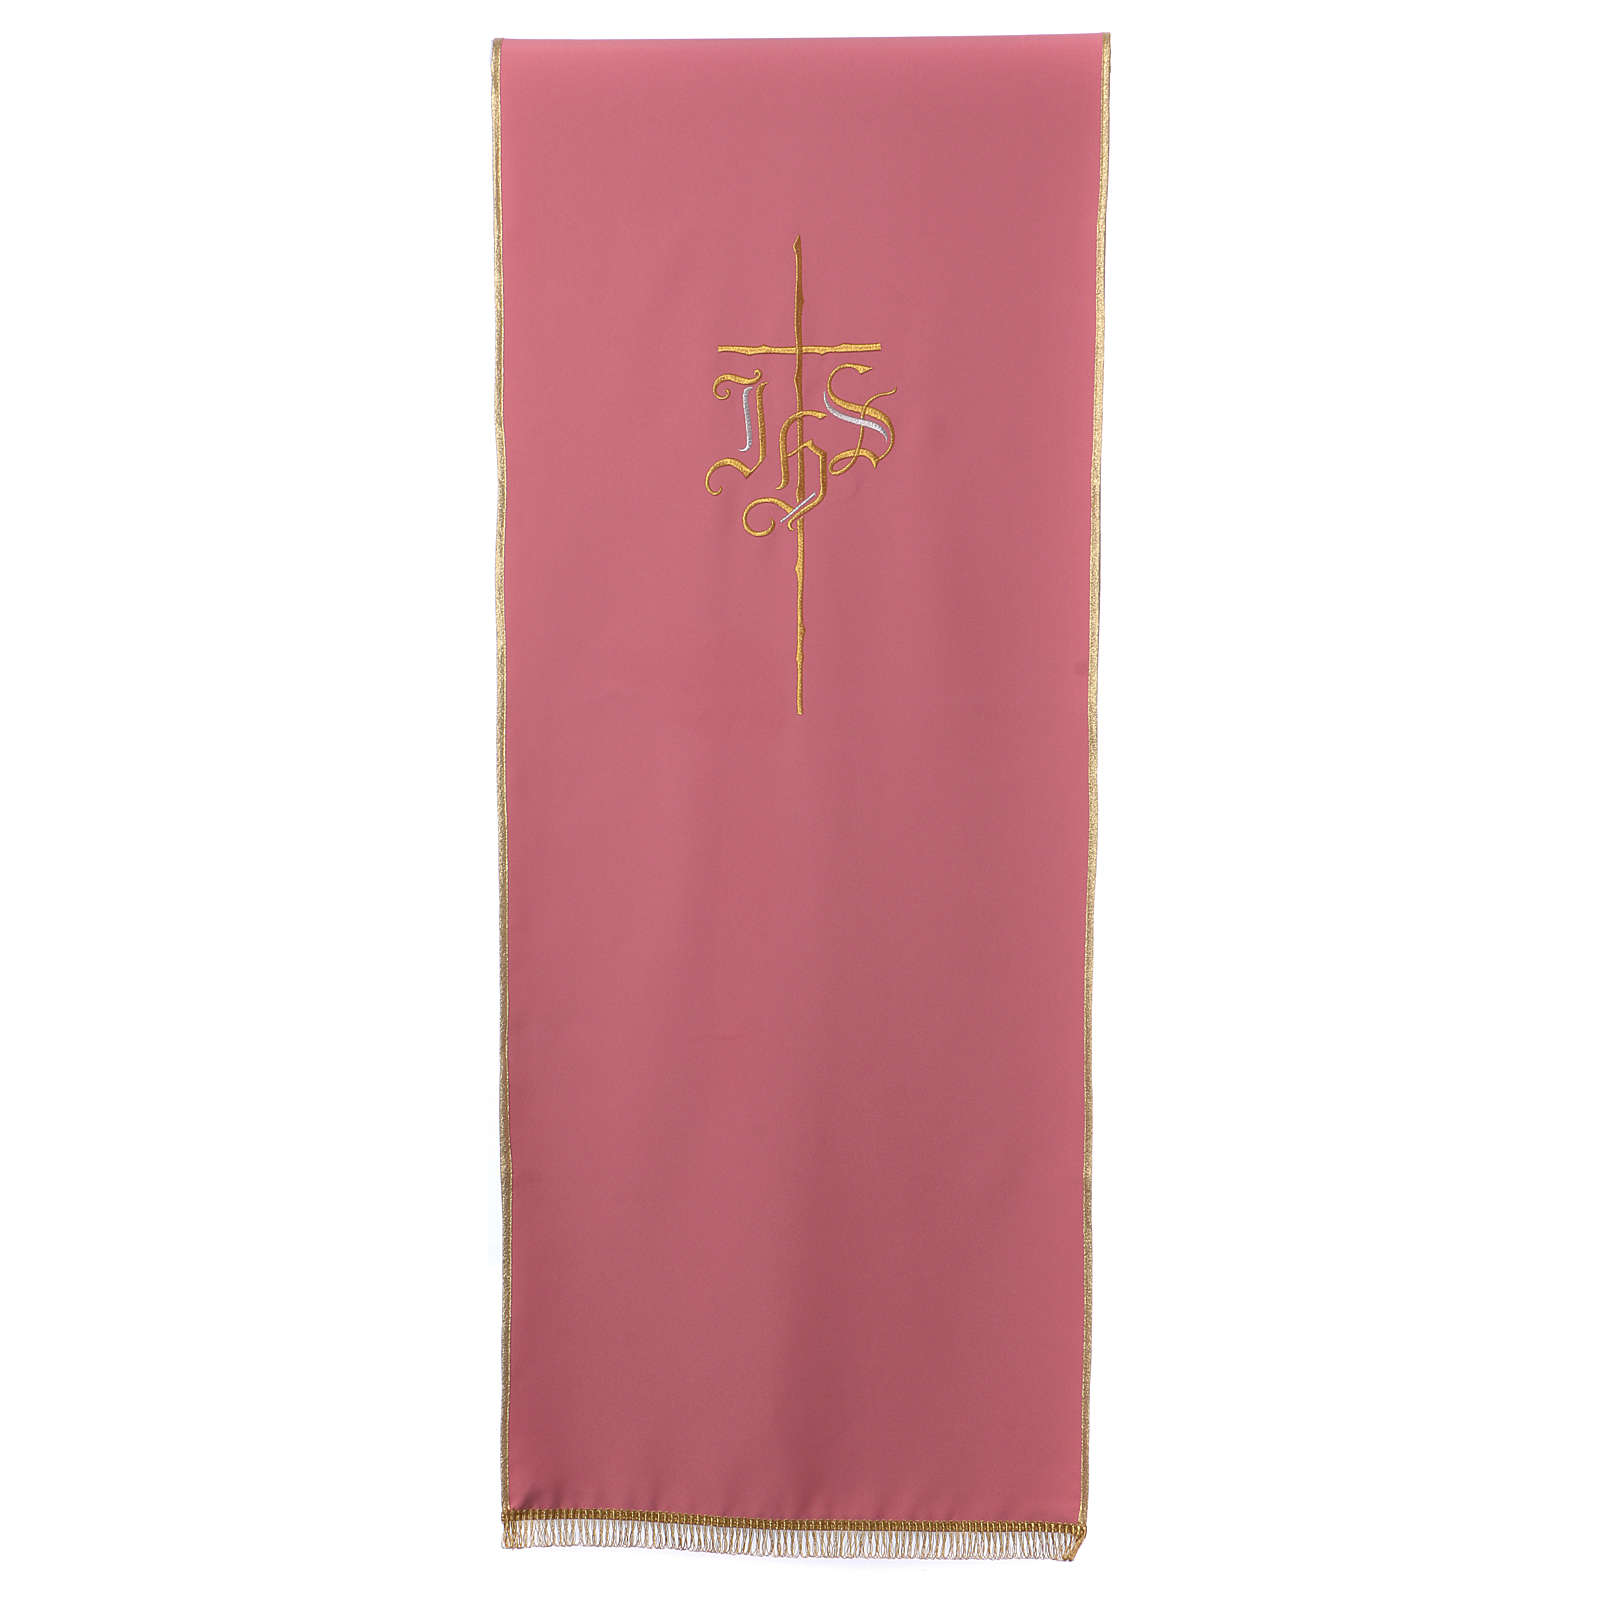 Rose bookstand cover with Cross and IHS symbol 4